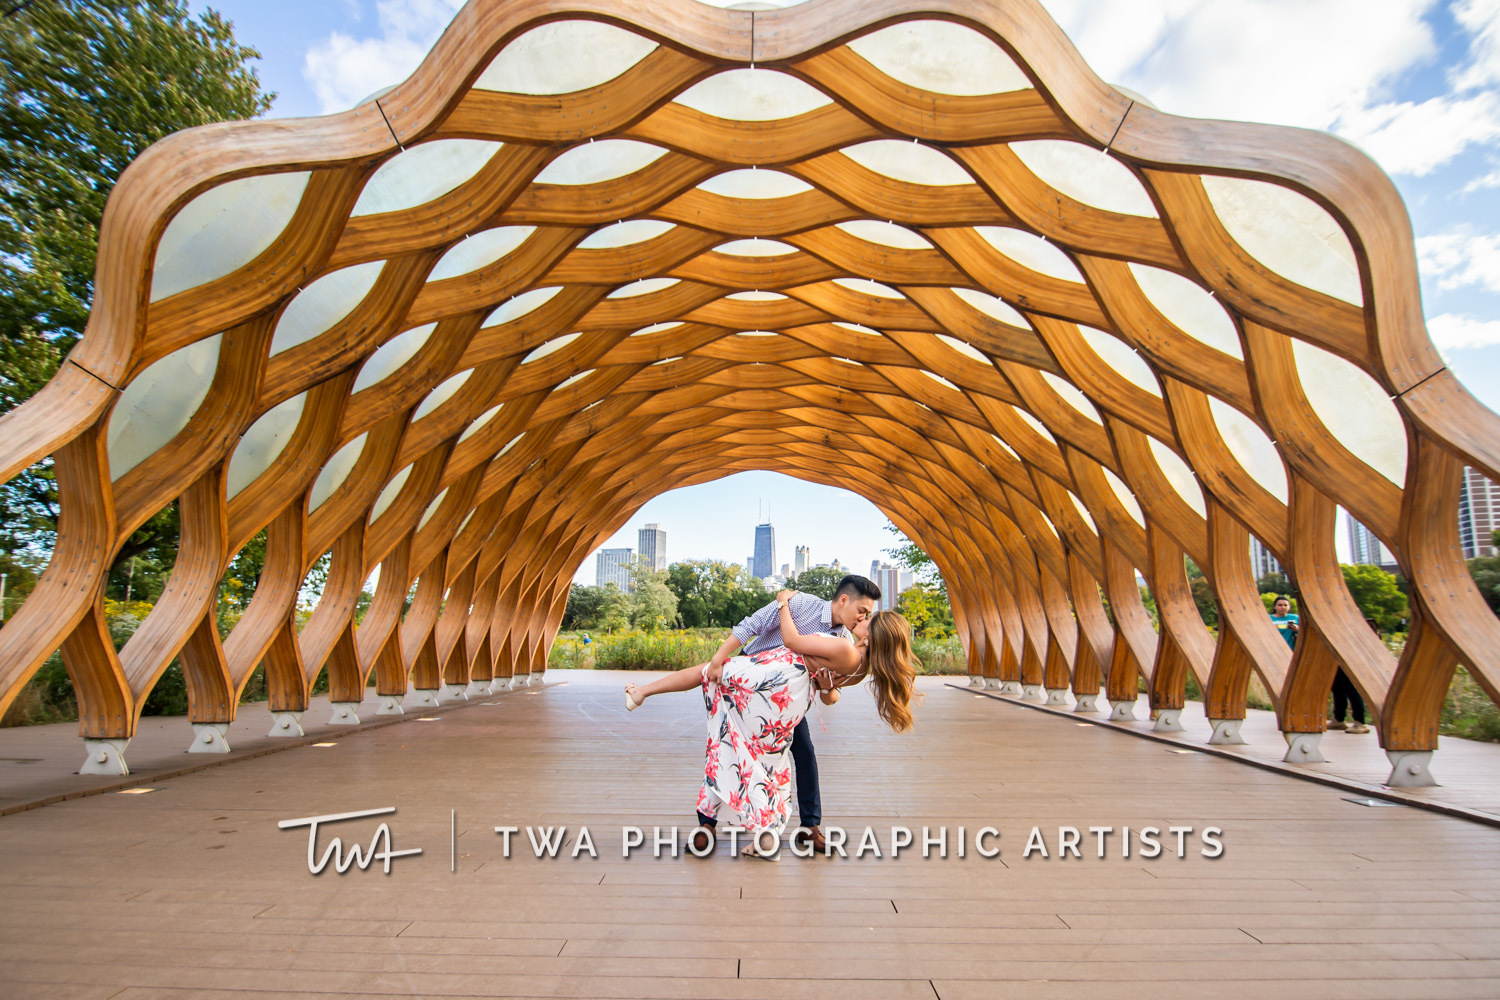 Chicago-Wedding-Photographer-TWA-Photographic-Artists-North-Ave-Beach_Butthajit_Dinh_MJ-042